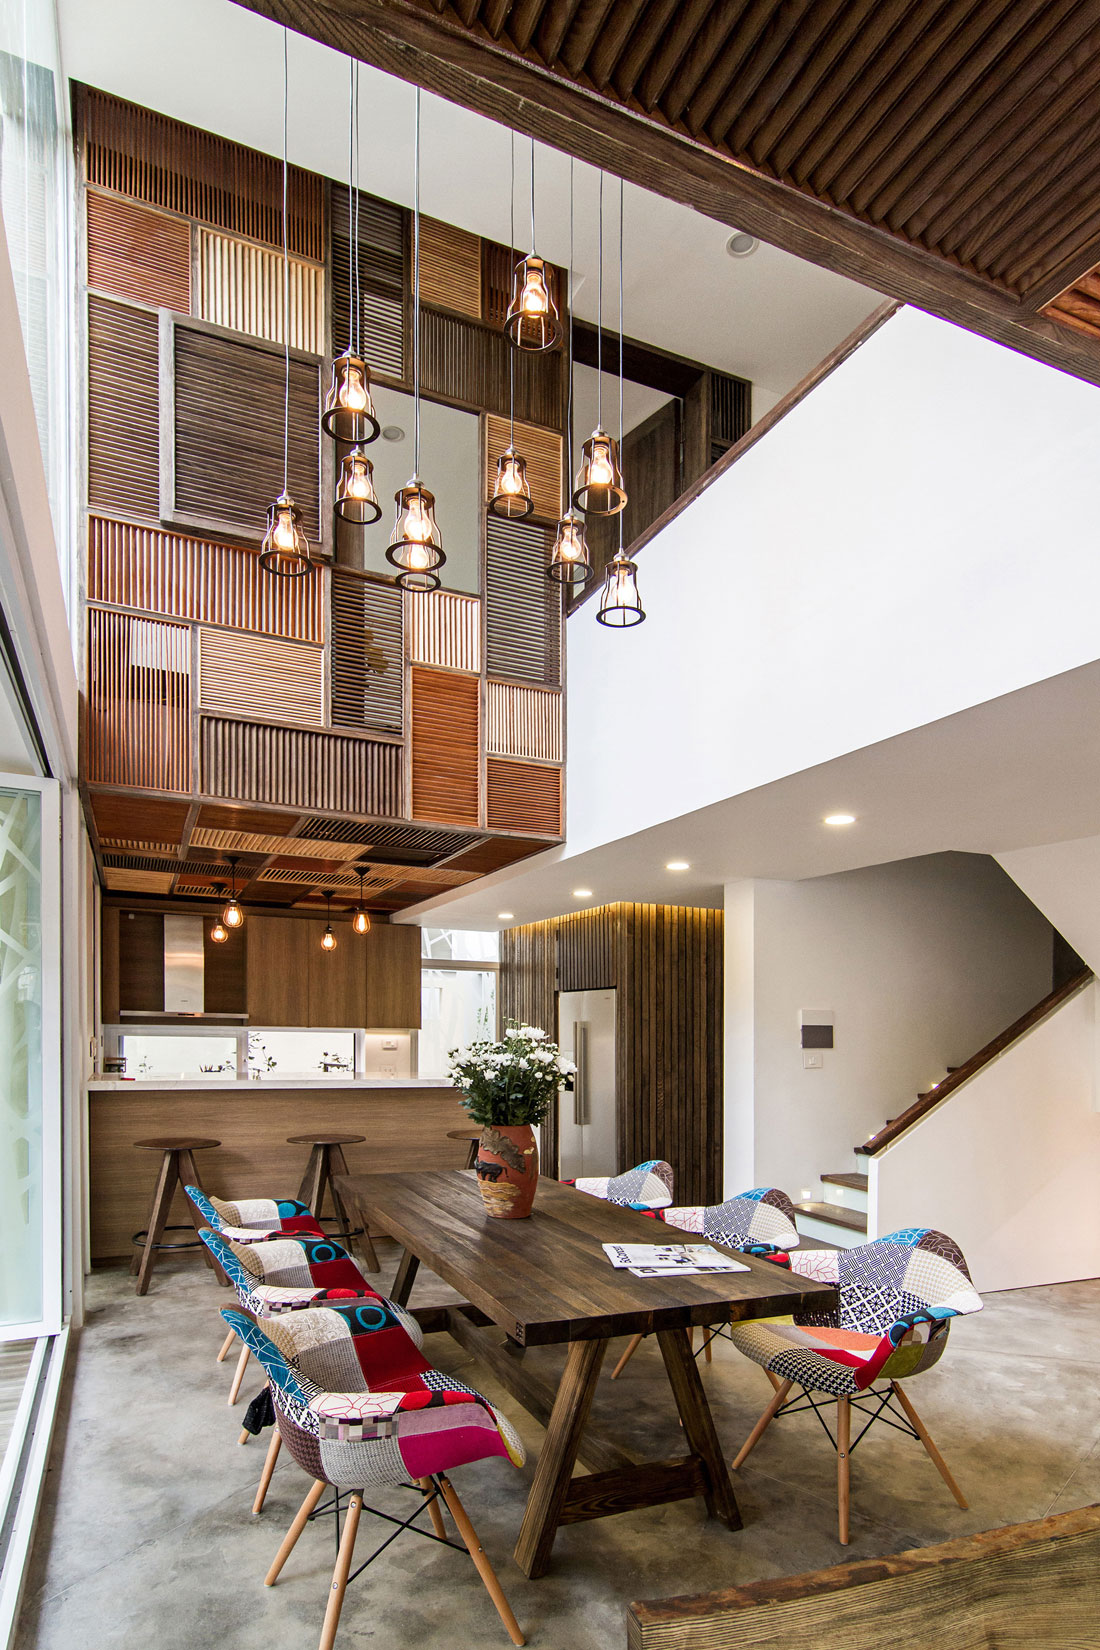 EPV Semi-Detached House Located in Ecopark Green Urban Area, Vietnam by AHL architects associates-13